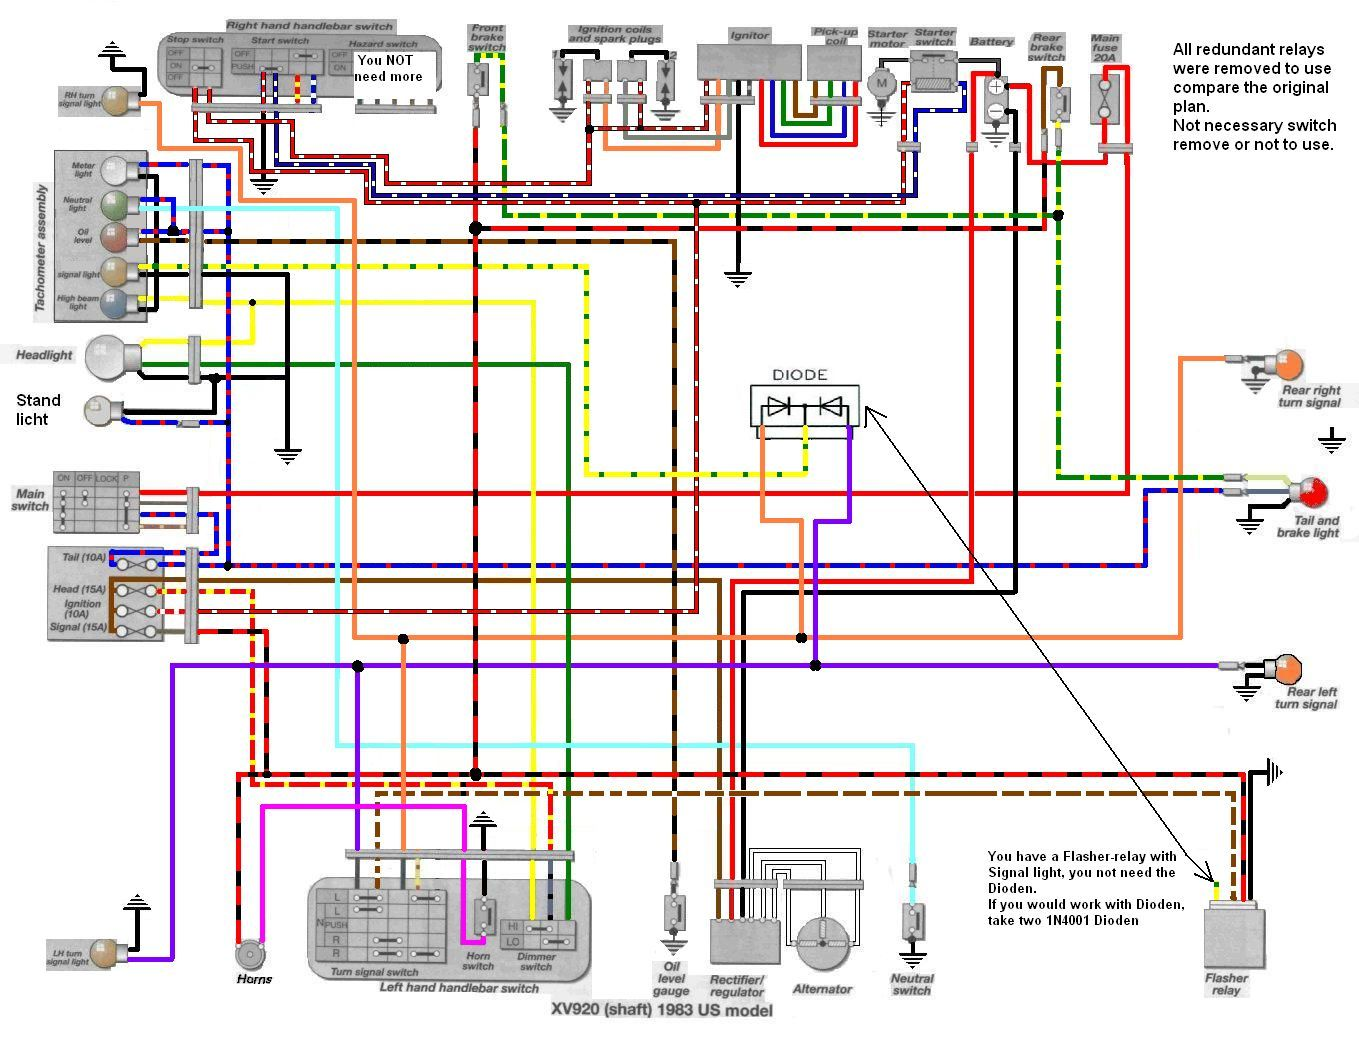 hight resolution of tr1 xv1000 xv920 wiring diagrams manfred s tr1 page all about yamaha tr1 xv1000 xv920